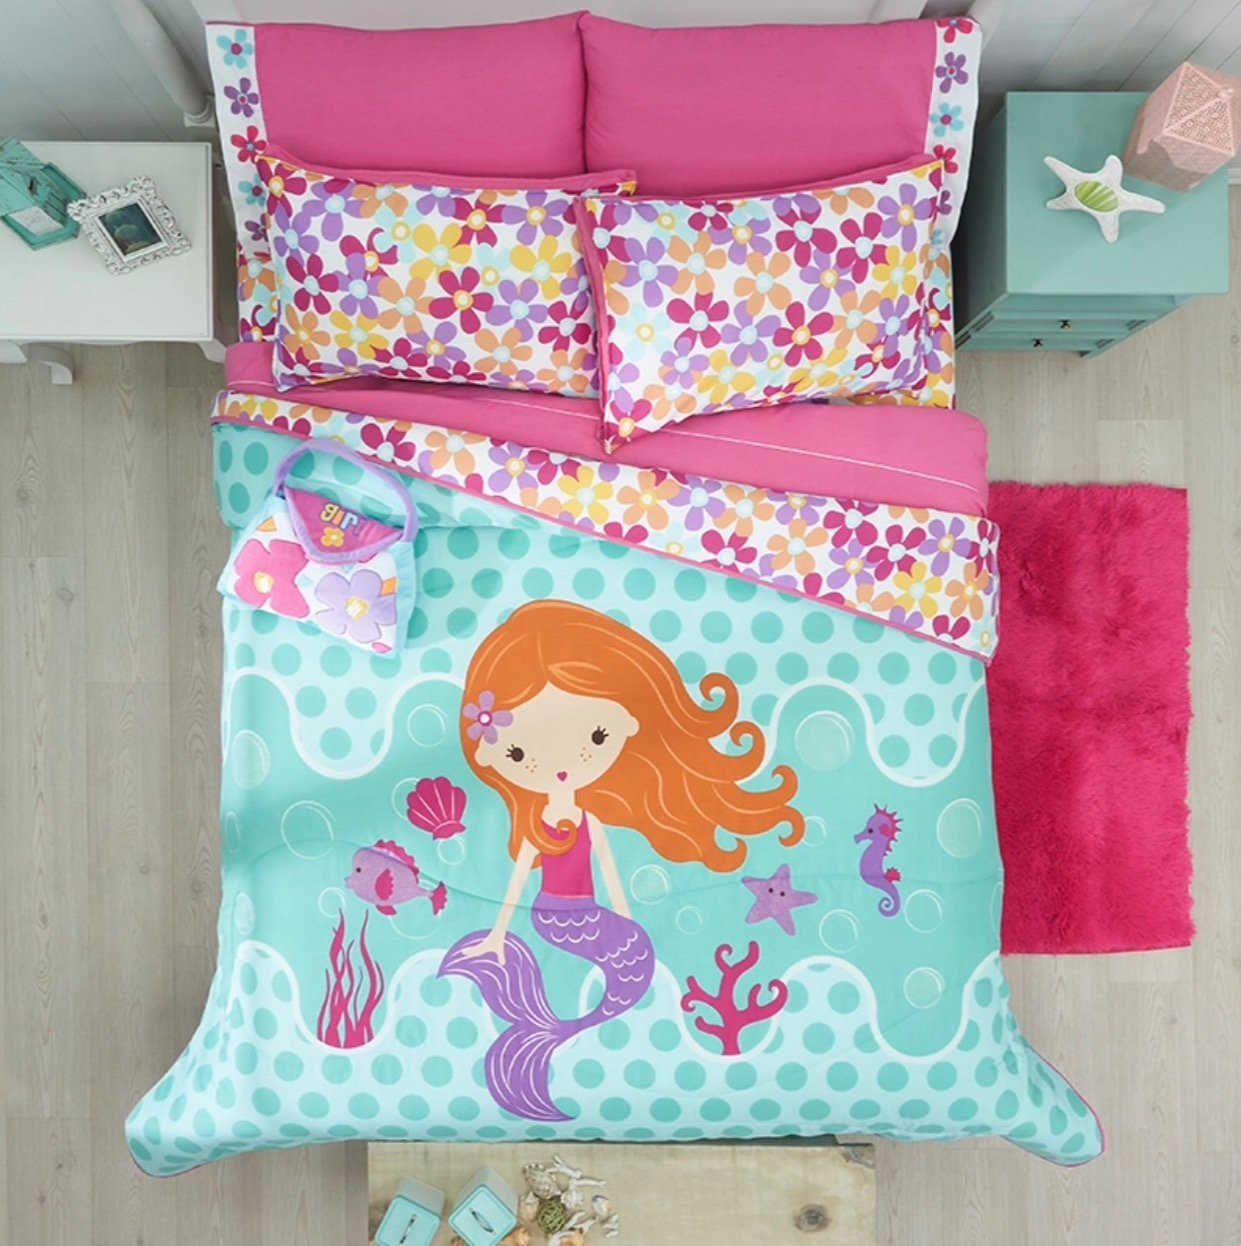 LITTLE MERMAID/FLOWERS TEENS GIRLS CUTE COLLECTION REVERSIBLE COMFORTER SET 3 PCS TWIN SIZE